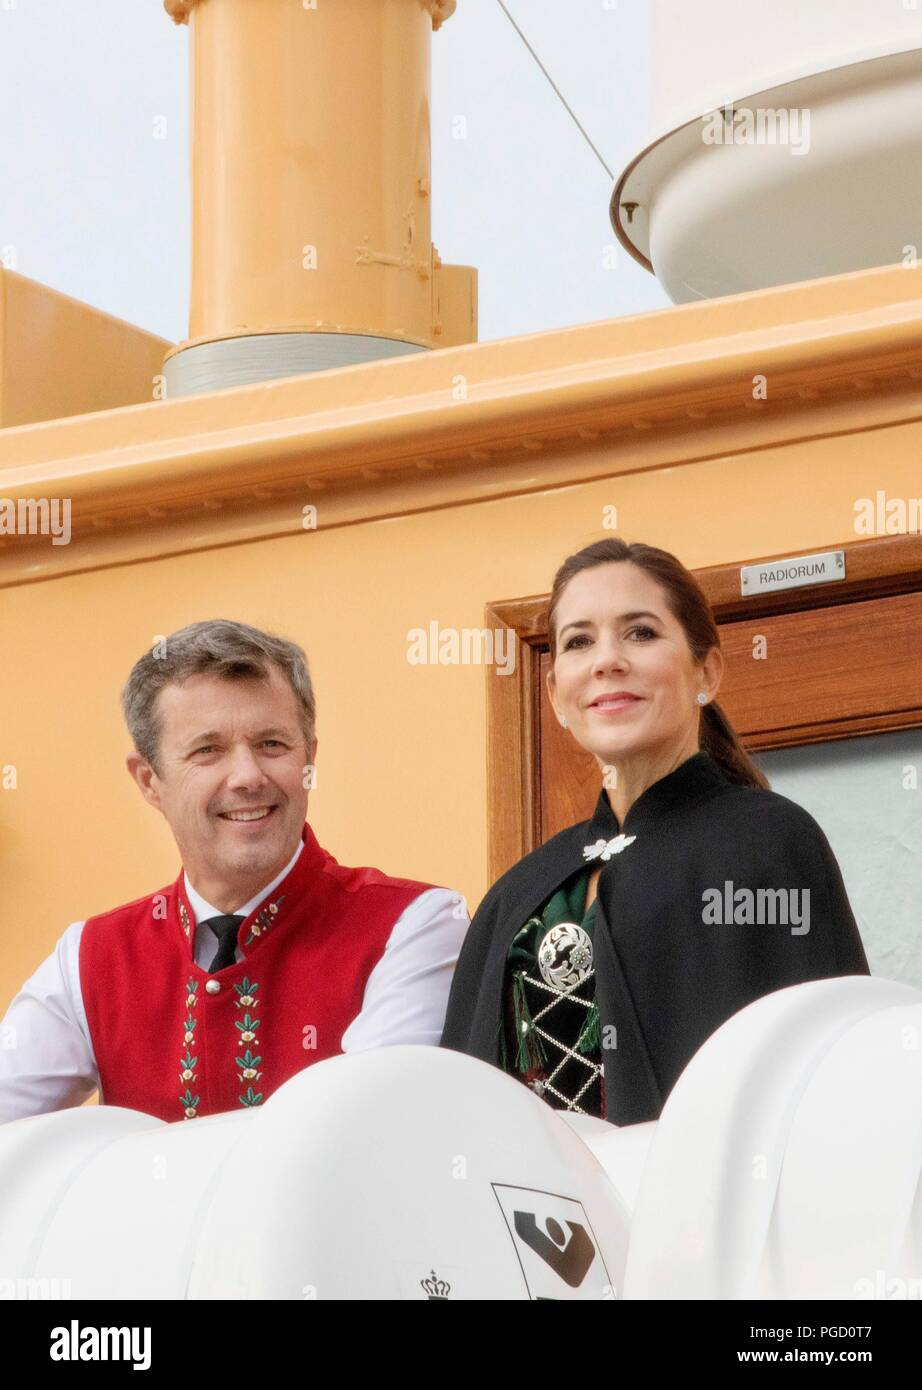 Crown Prince Frederik and Crown Princess Mary of Denmark arrive with the The Royal Ship, HDMY Dannebrog at Bakkafrost in Glyvrar, on August 25, 2018, on the 3rd of the 4 days visit to the Faroe Islands  Photo : Albert Nieboer /  Netherlands OUT / Point de Vue OUT | - Stock Image